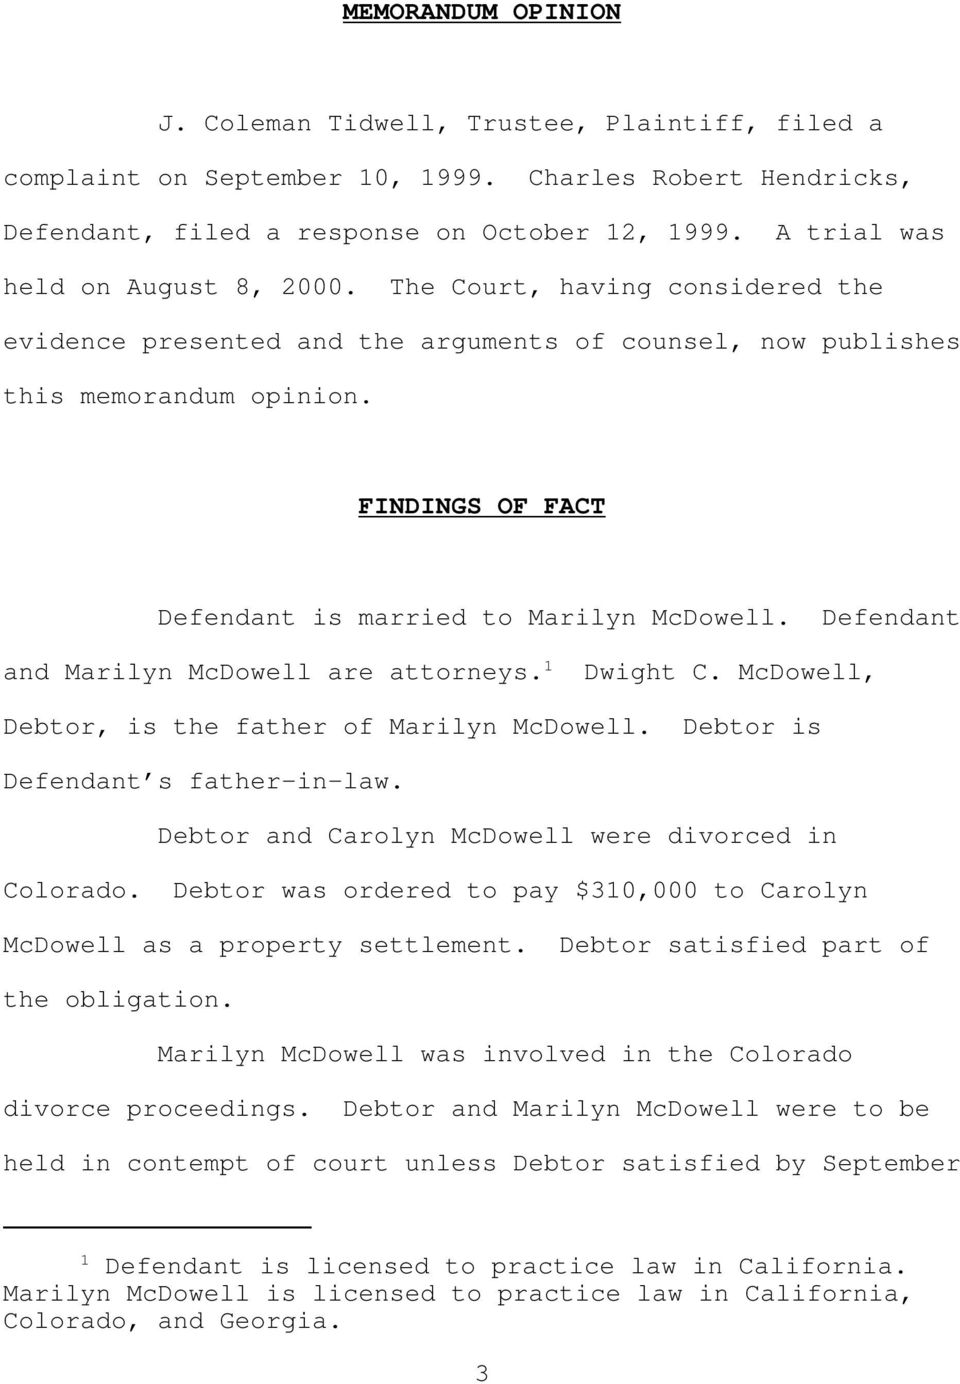 FINDINGS OF FACT Defendant is married to Marilyn McDowell. Defendant and Marilyn McDowell are attorneys. 1 Dwight C. McDowell, Debtor, is the father of Marilyn McDowell.